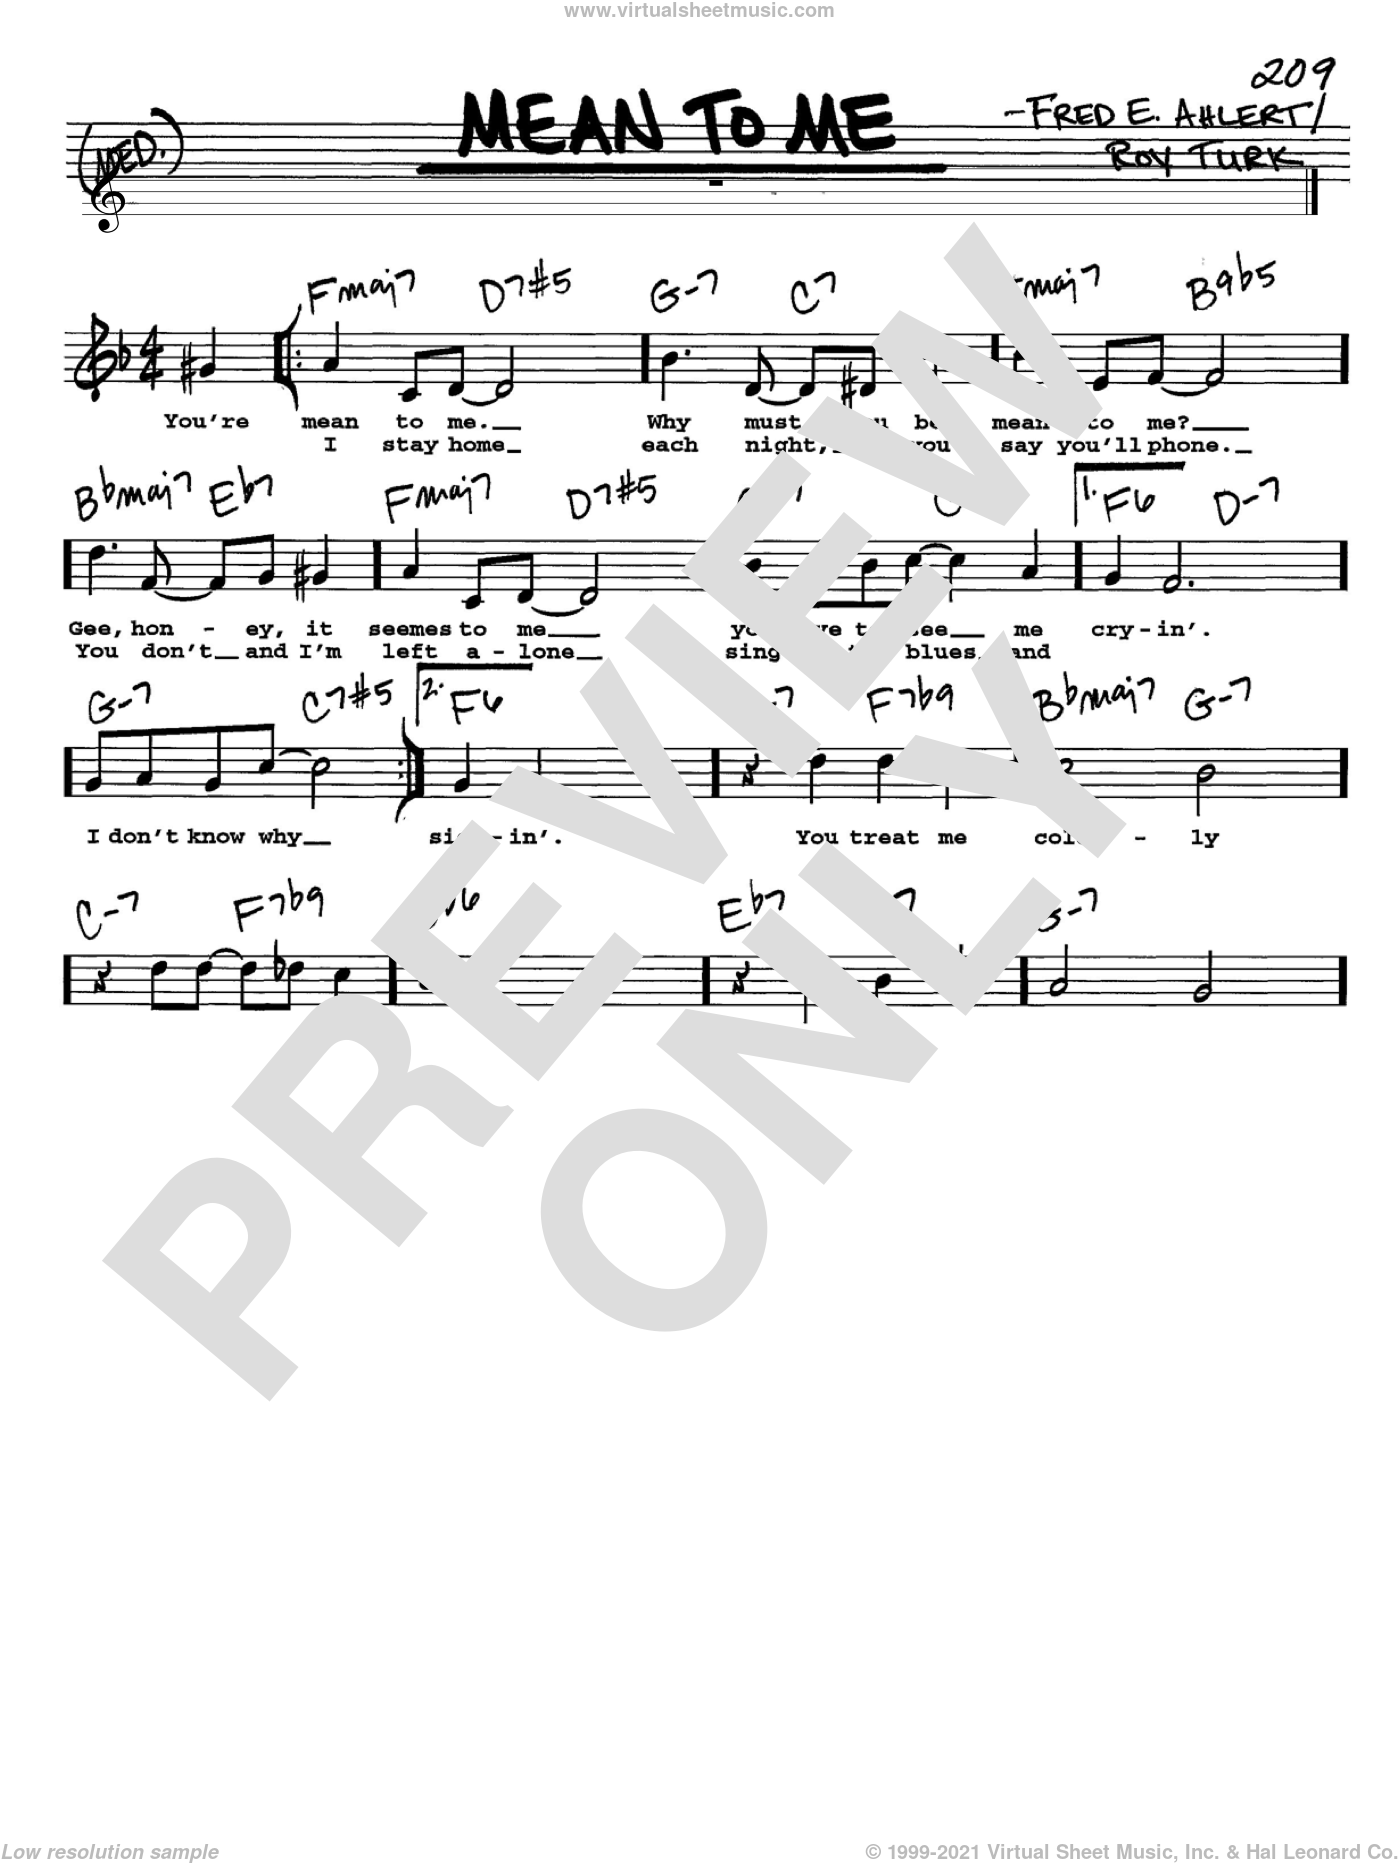 Ahlert   Mean To Me sheet music real book with lyrics [PDF]